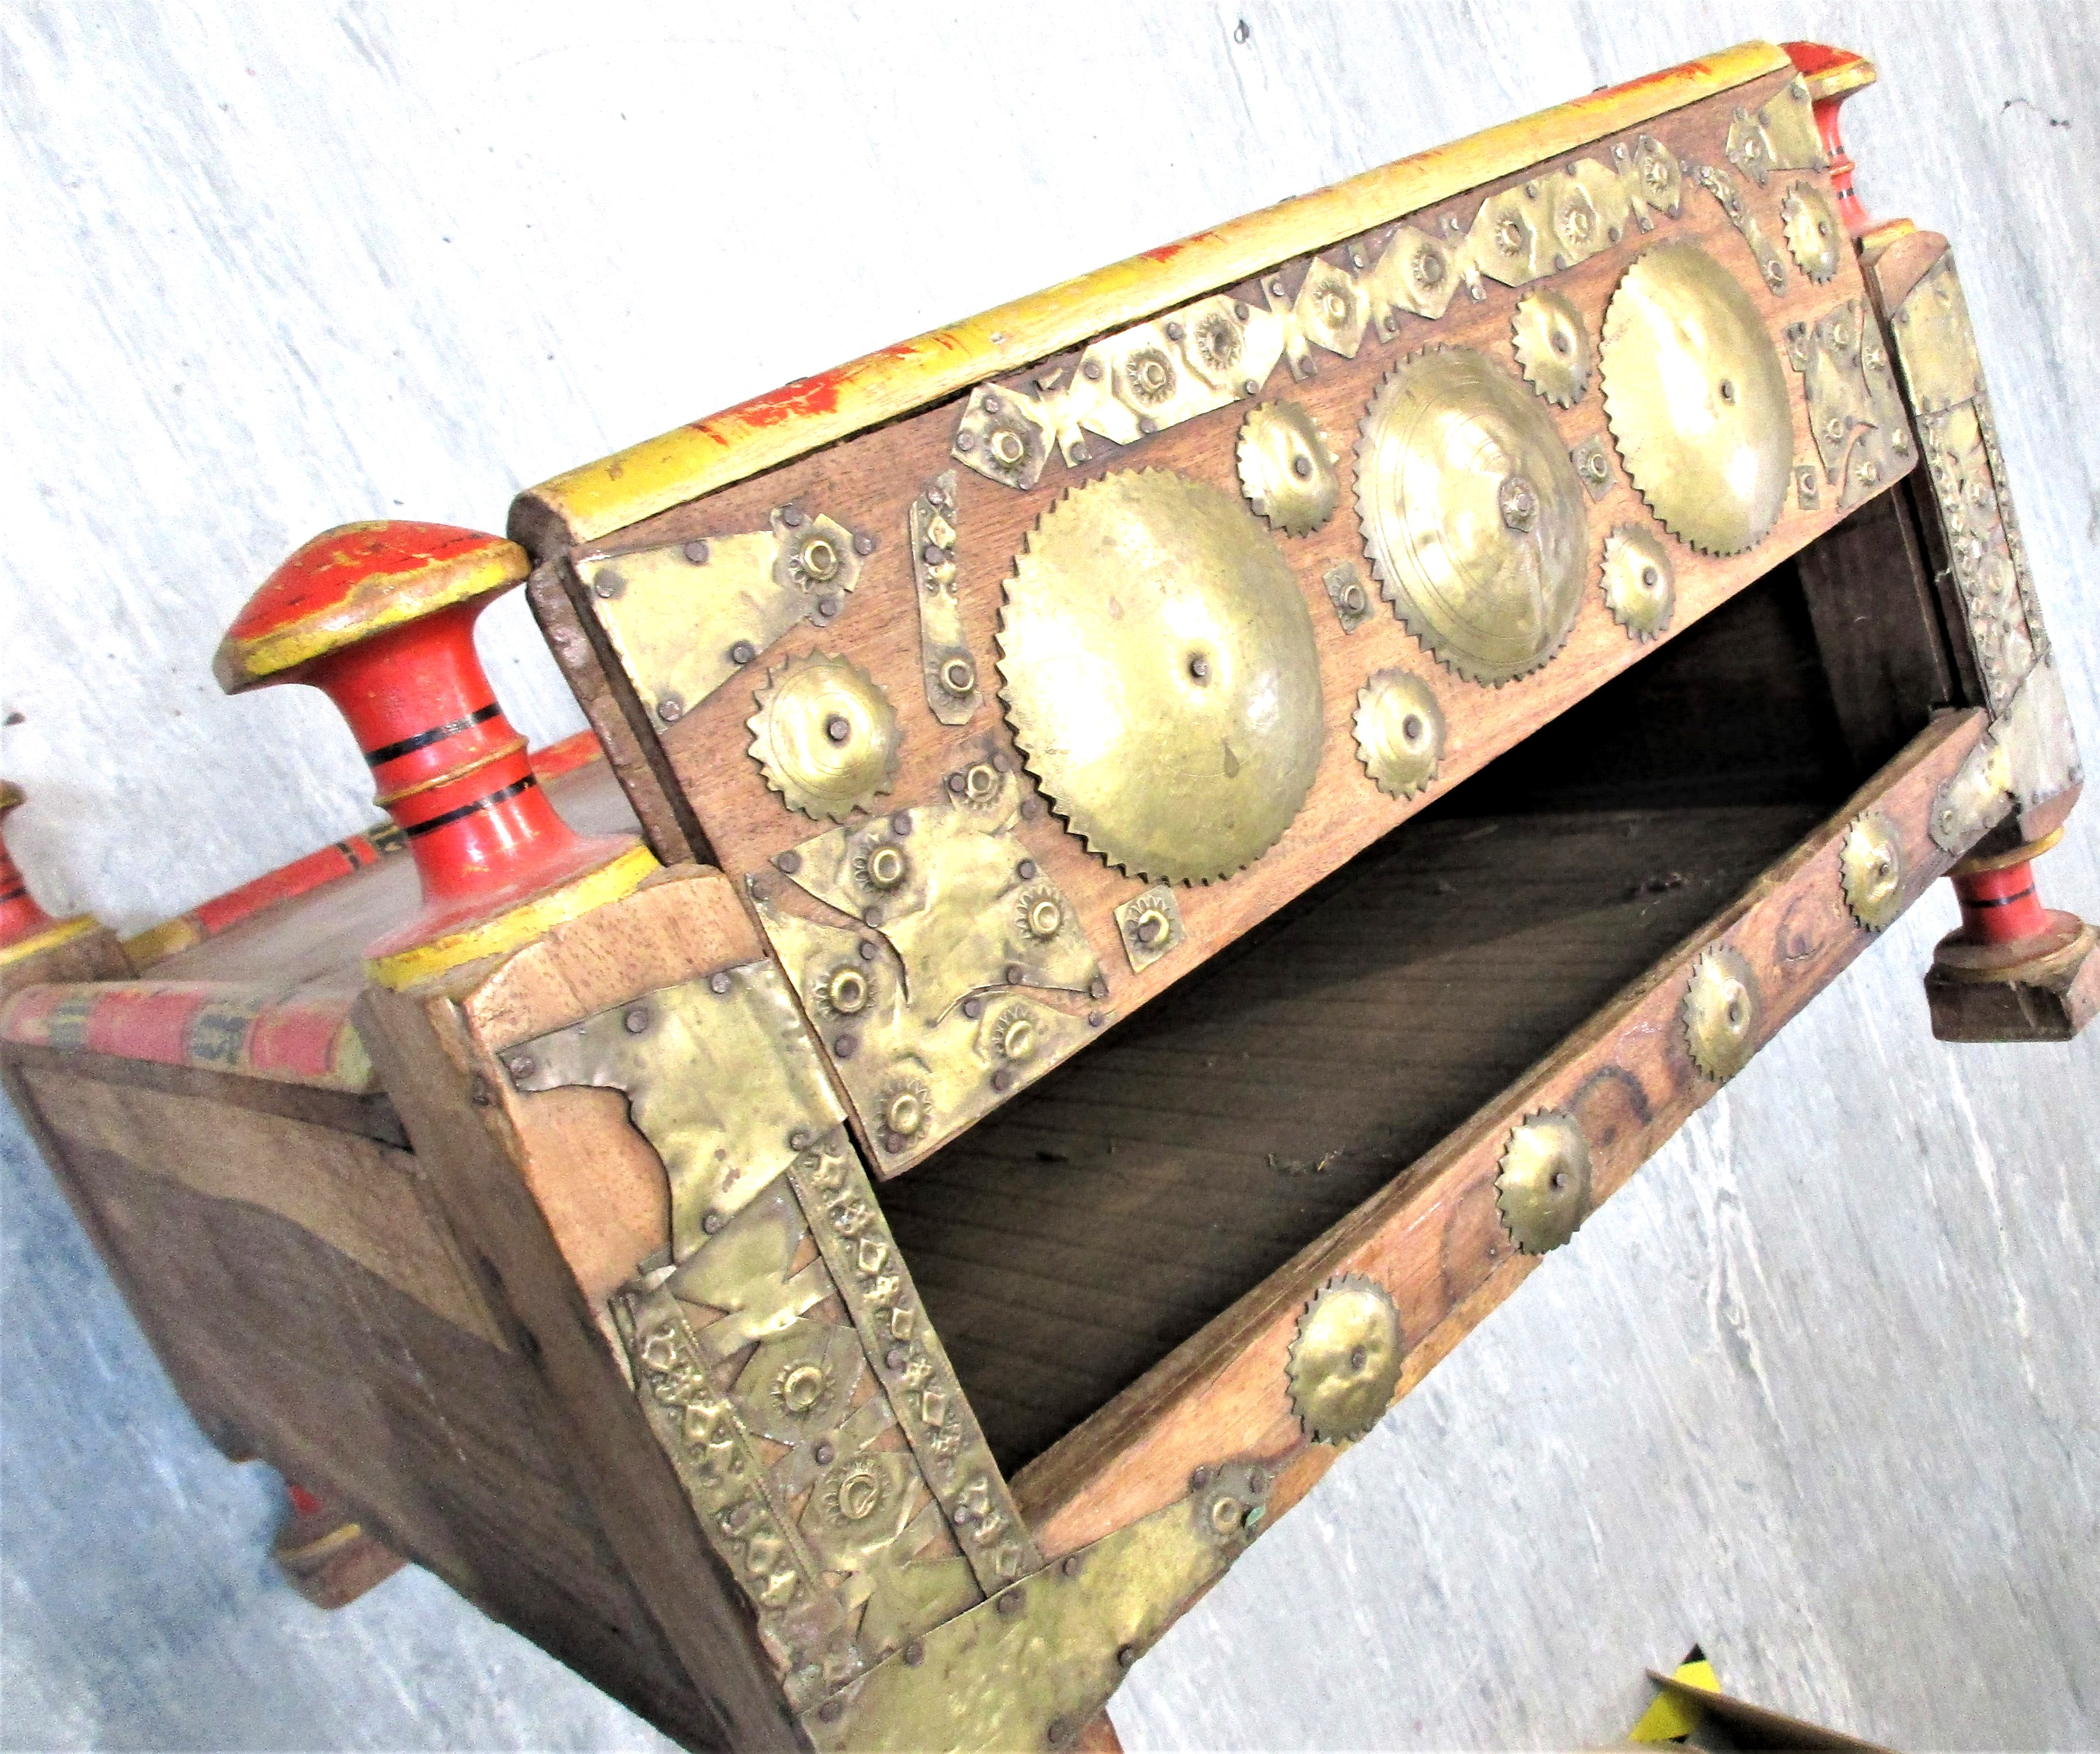 Merchant's table from Jalalabad. This would be used in a market or small shop. Most likely the - Image 5 of 5